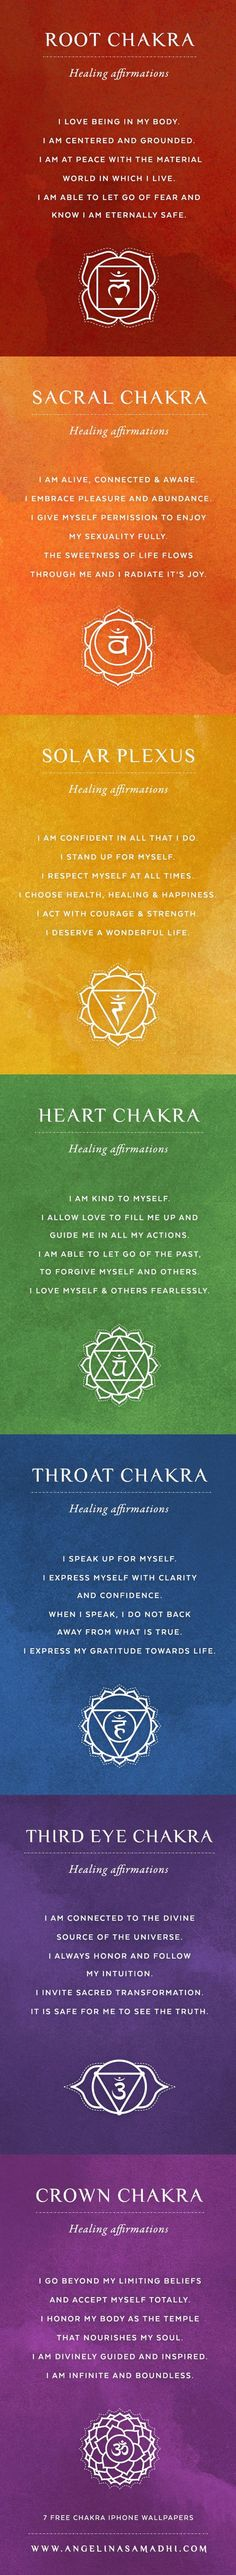 The Healing Powers of Reiki - Reiki: Amazing Secret Discovered by Middle-Aged Construction Worker Releases Healing Energy Through The Palm of His Hands. Cures Diseases and Ailments Just By Touching Them. And Even Heals People Over Vast Distances. Le Reiki, Reiki Healer, Reiki Chakra, Root Chakra Healing, Chakra Crystals, Ayurveda, Mind Body Spirit, Mind Body Soul, Meditation